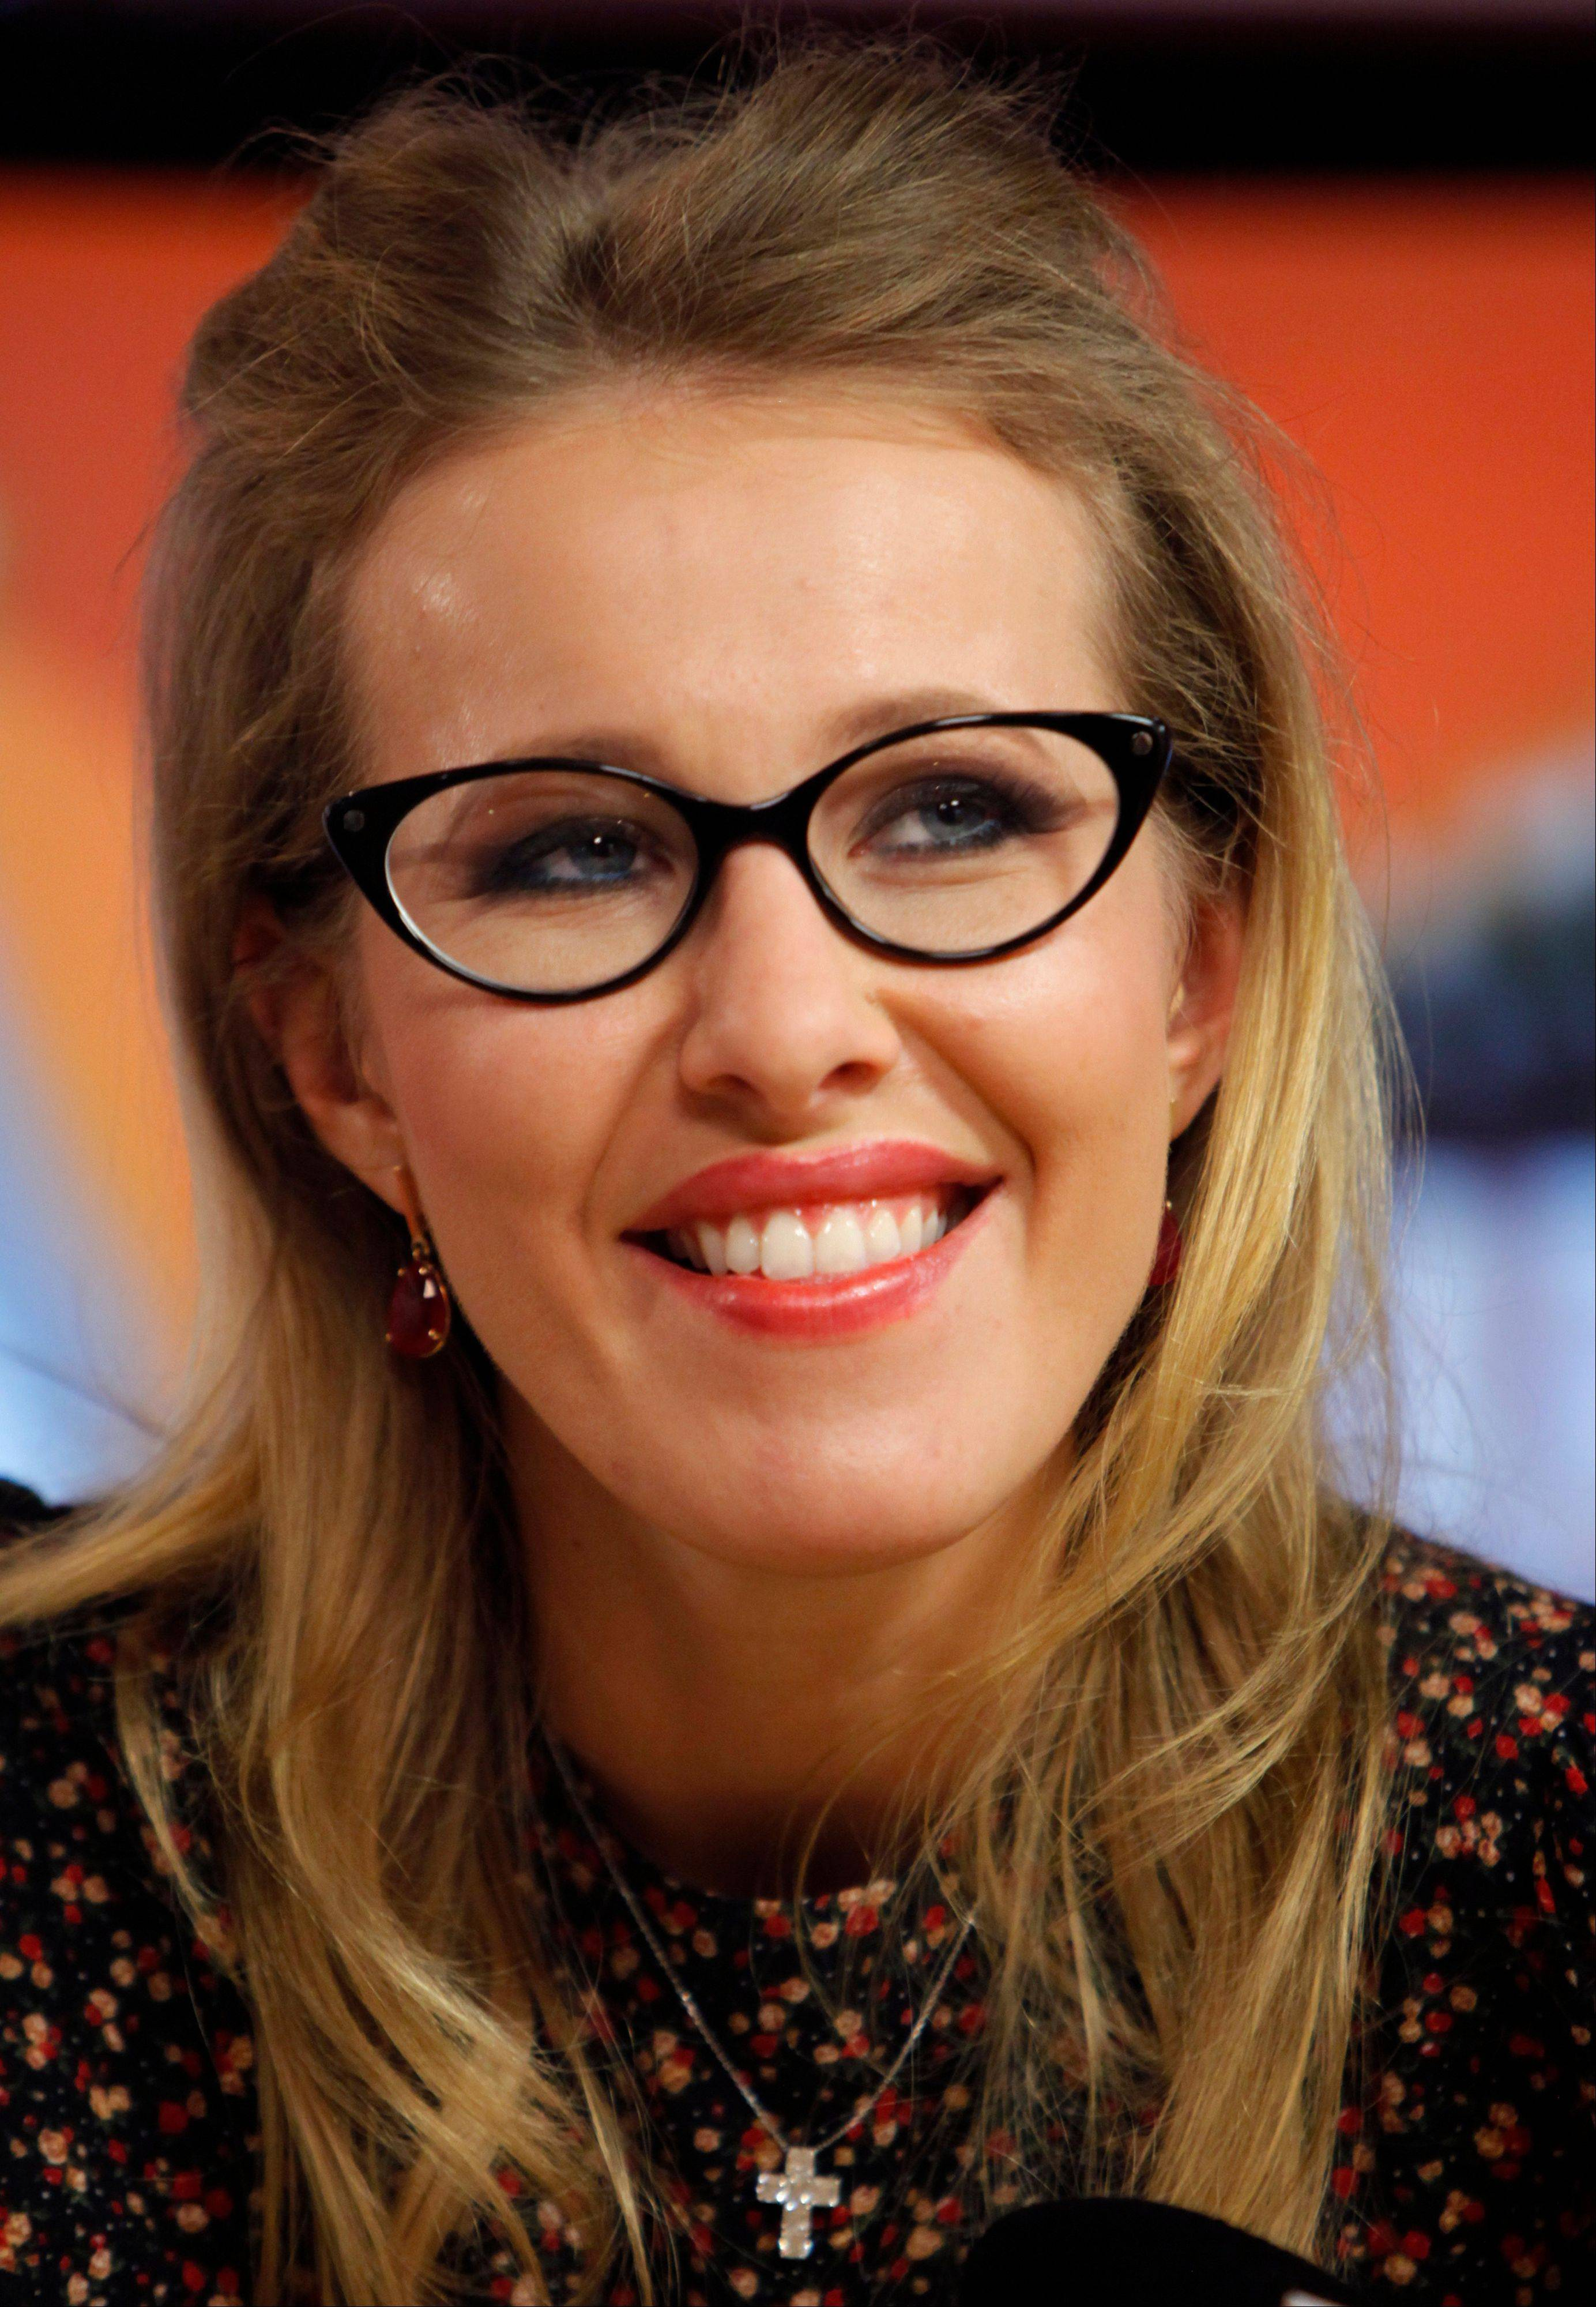 Associated Press/Jan. 18, 2012 Russian socialite and TV host Kseniya Sobchak, daughter of the late St. Petersburg mayor, Anatoly Sobchak, speaks to journalists during her interview at a radio station in Moscow.